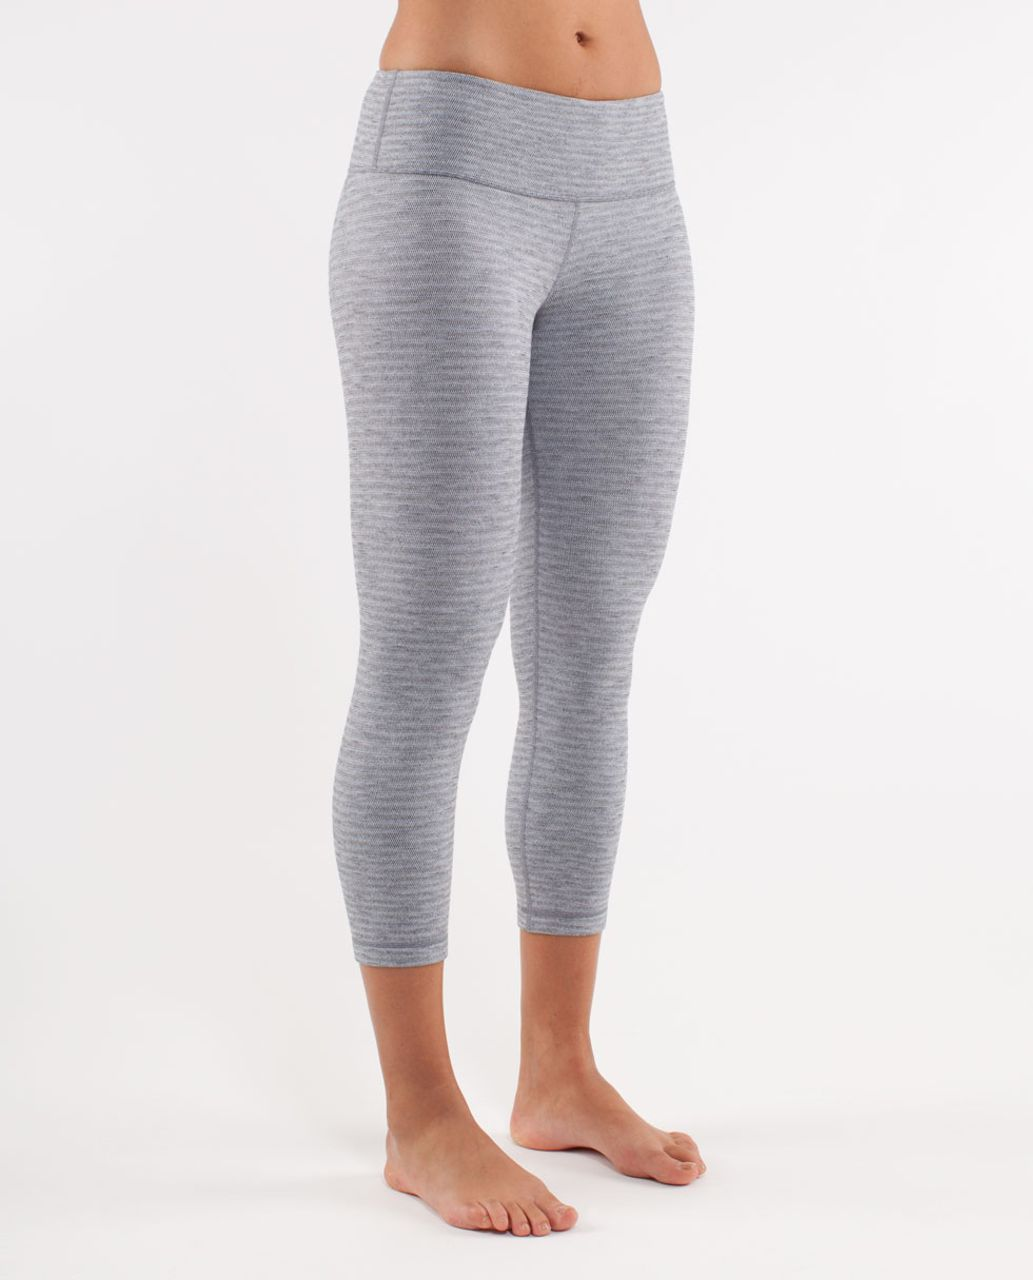 Lululemon Wunder Under Crop *Pique - Deep Coal Silver Spoon Pique